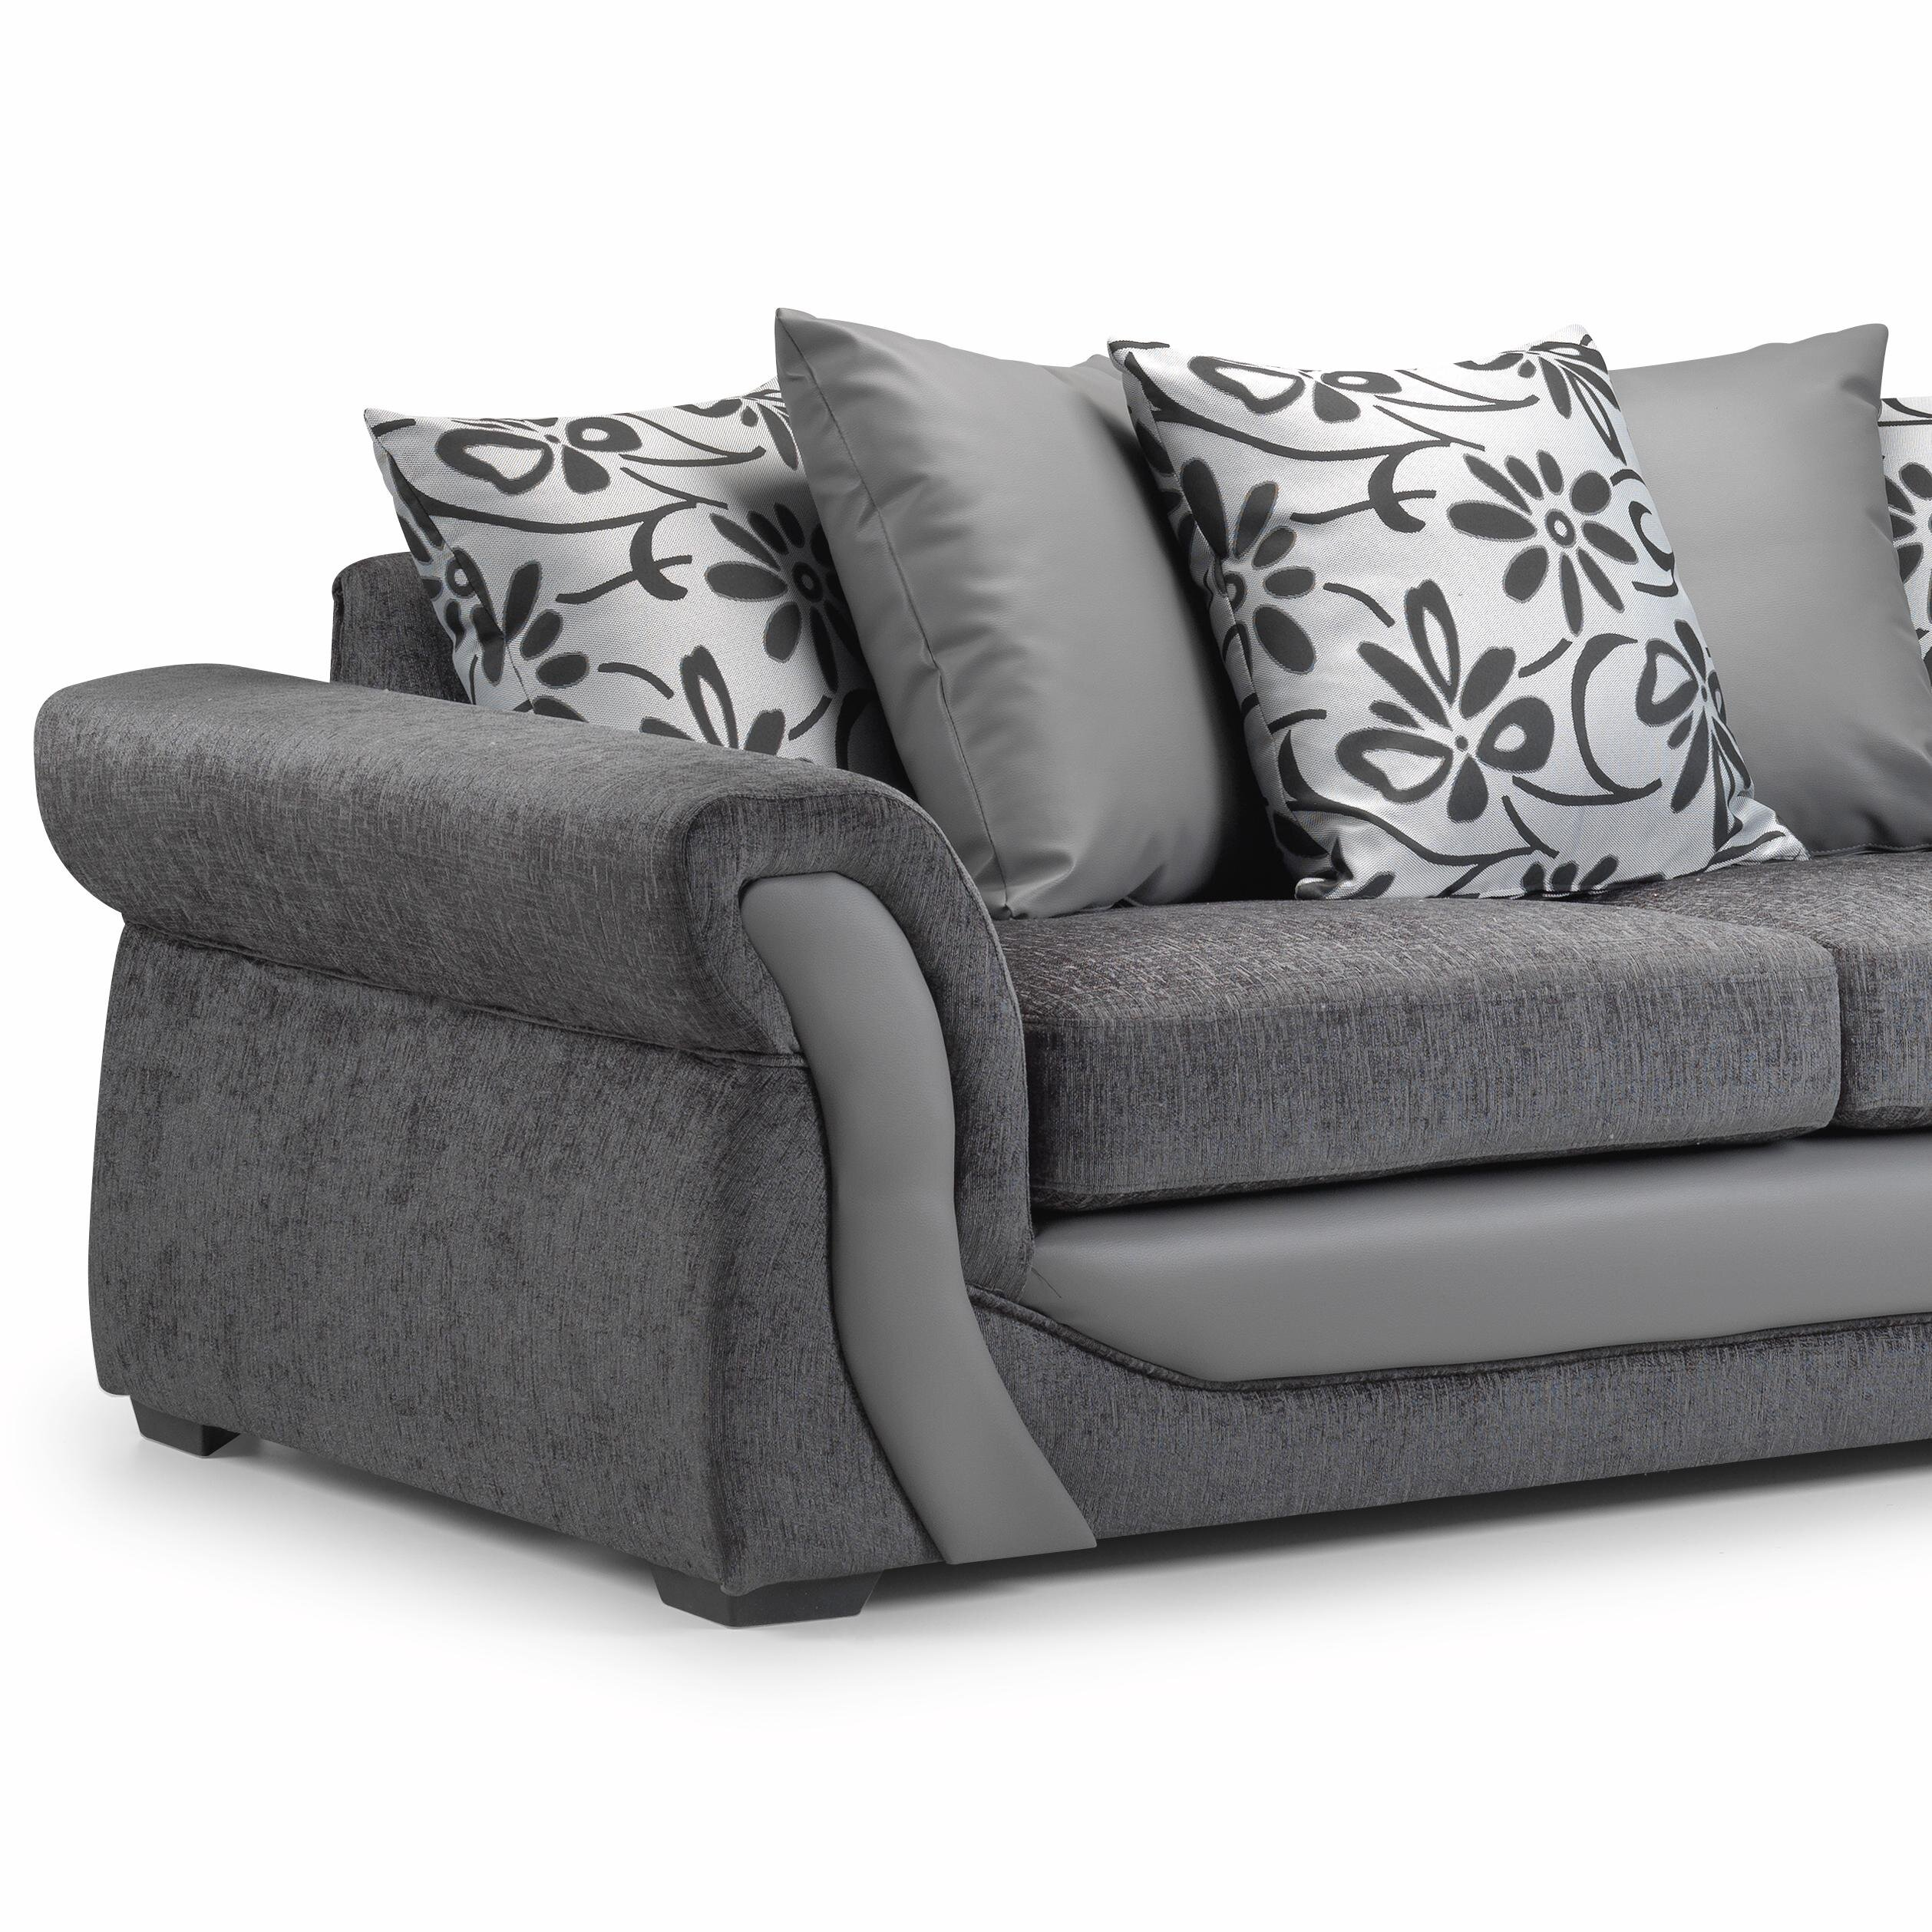 Fine Dg Sofas On Twitter We Have Amazing Deals Sofabeds From Evergreenethics Interior Chair Design Evergreenethicsorg